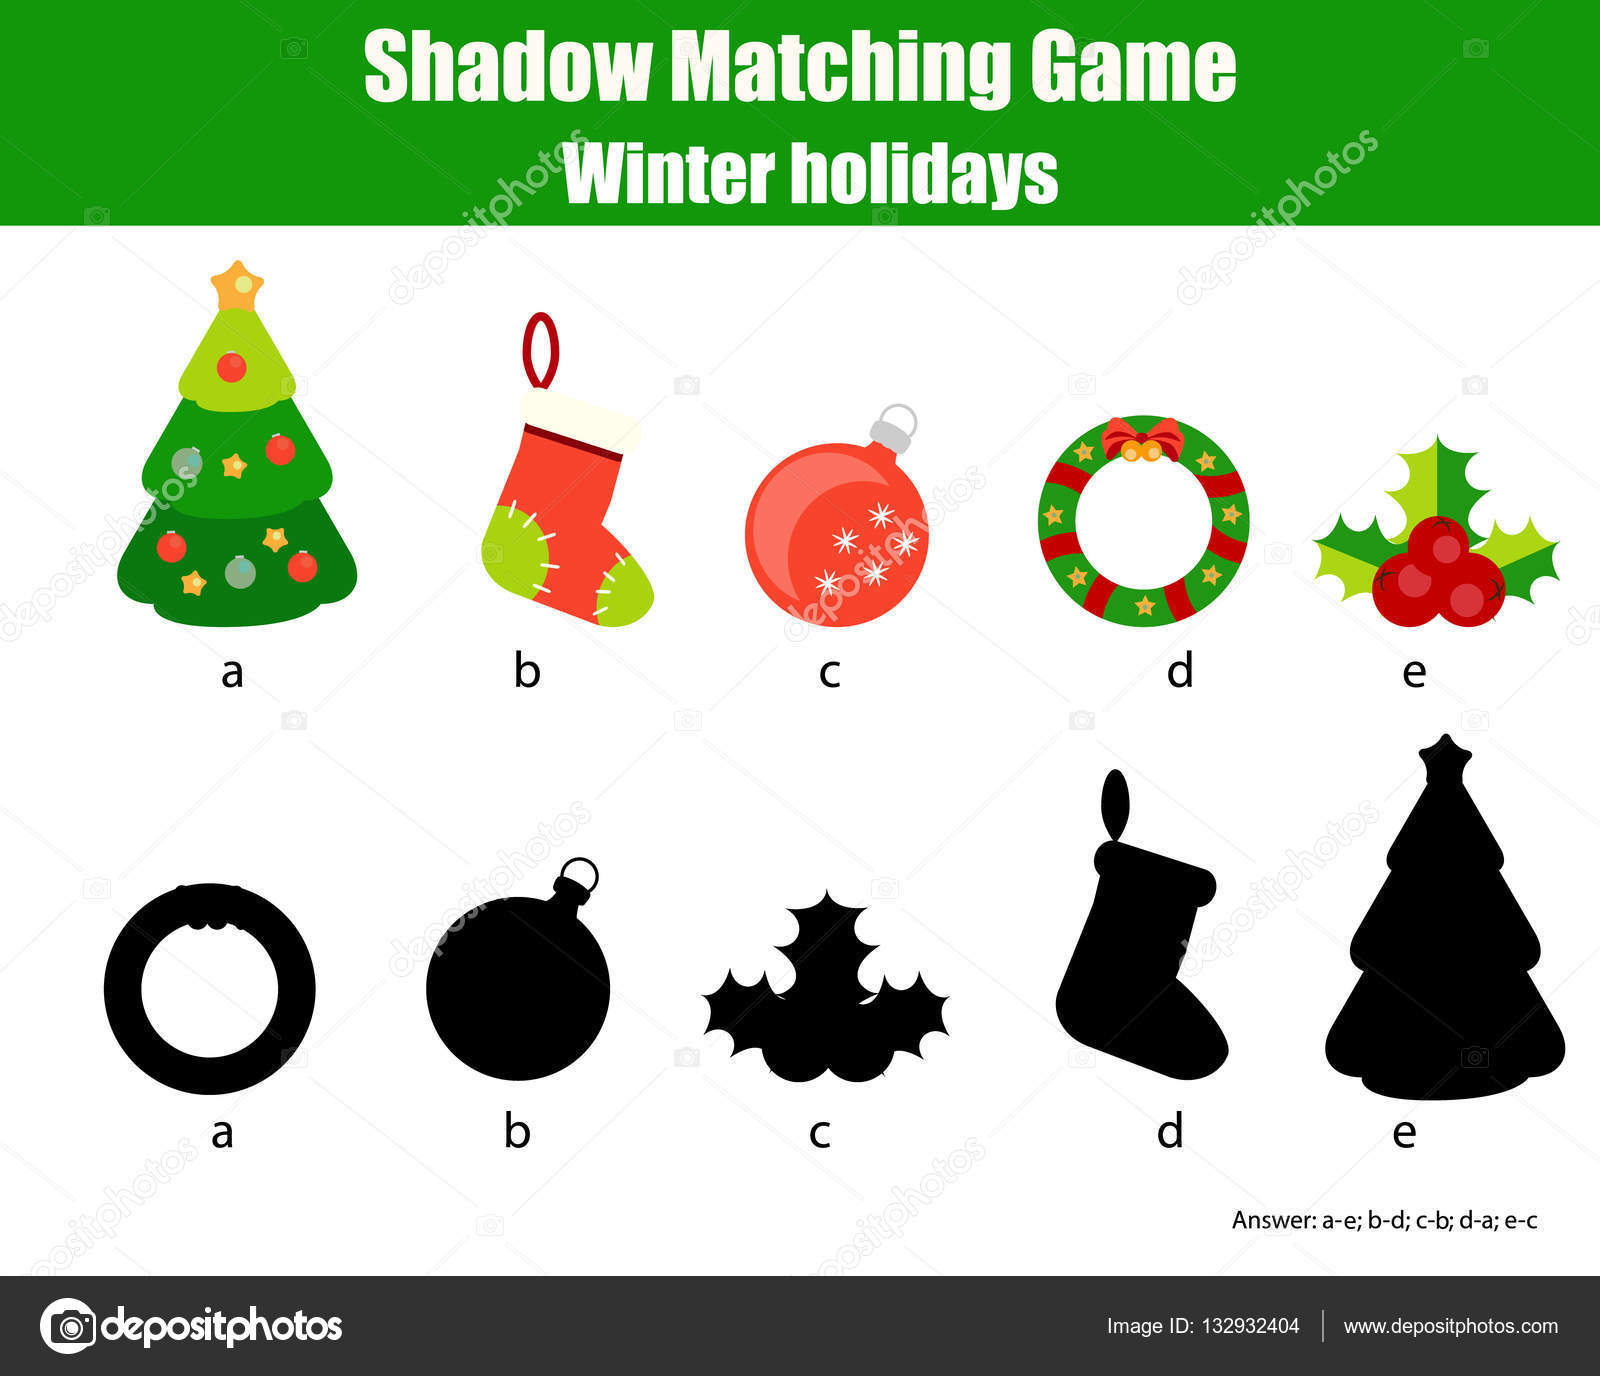 Shadow Matching Game Christmas Winter Holidays Theme